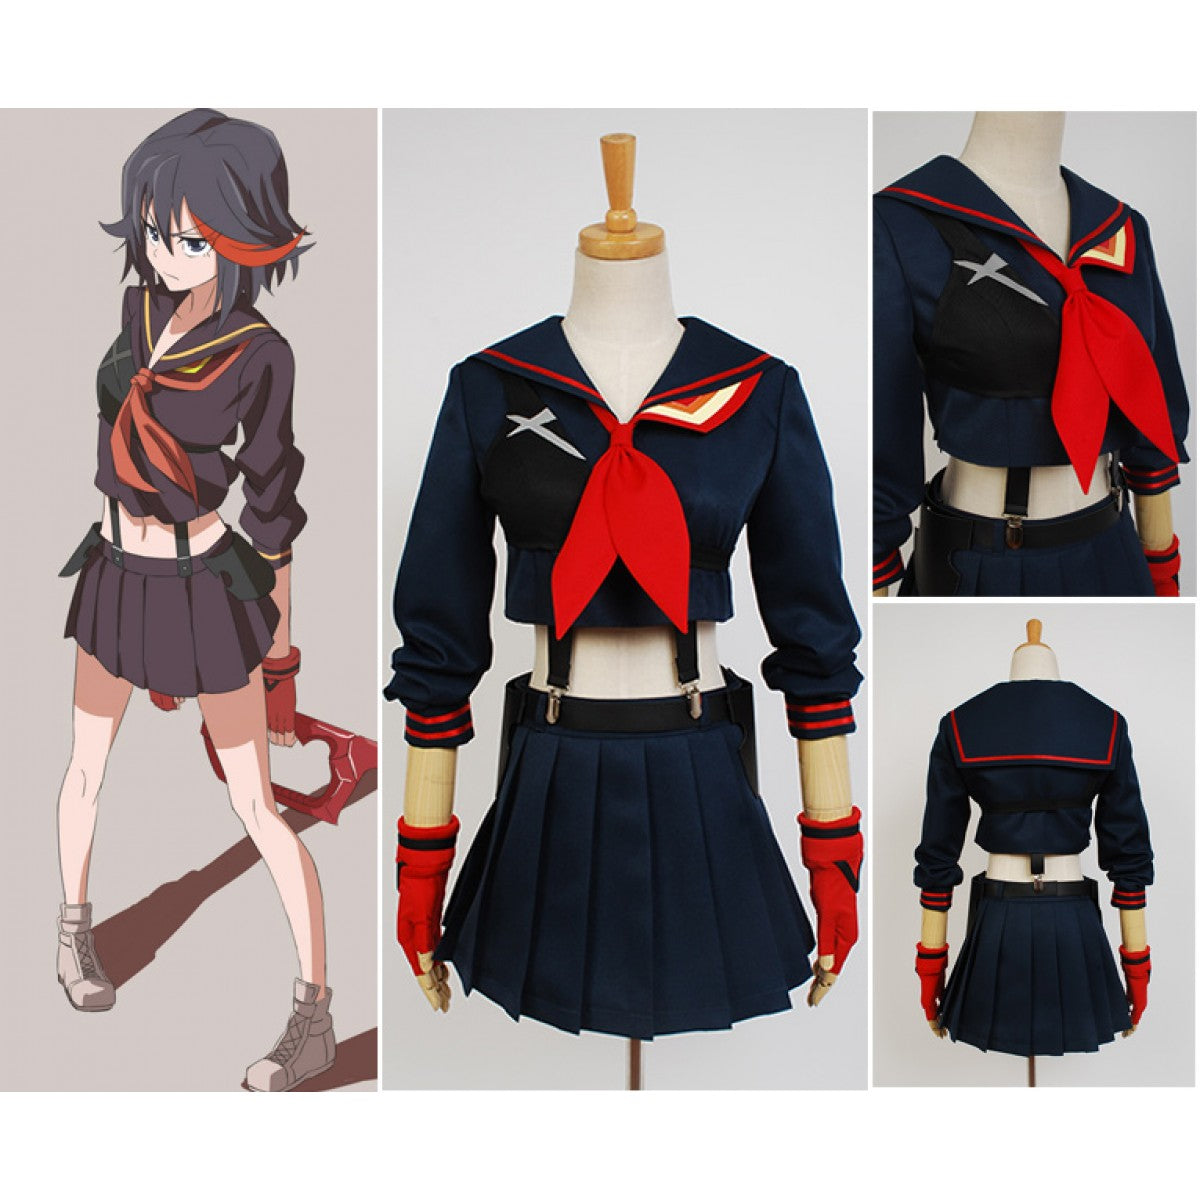 KILL la KILL Ryuko Matoi Cosplay Costume for Cheap